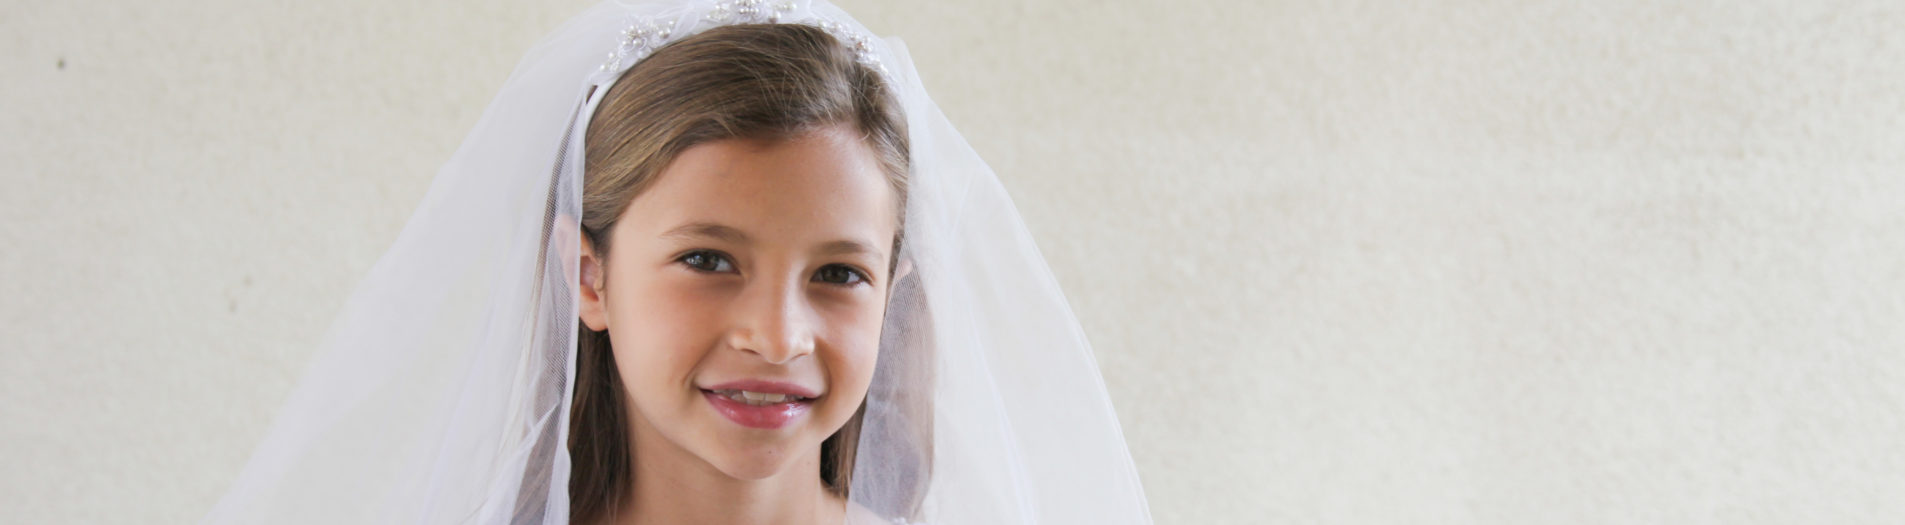 First Communion Portraits have taught me that every child has a song in their heart | San Carlos, CA Photographer | Chapel Hill, NC Photographer